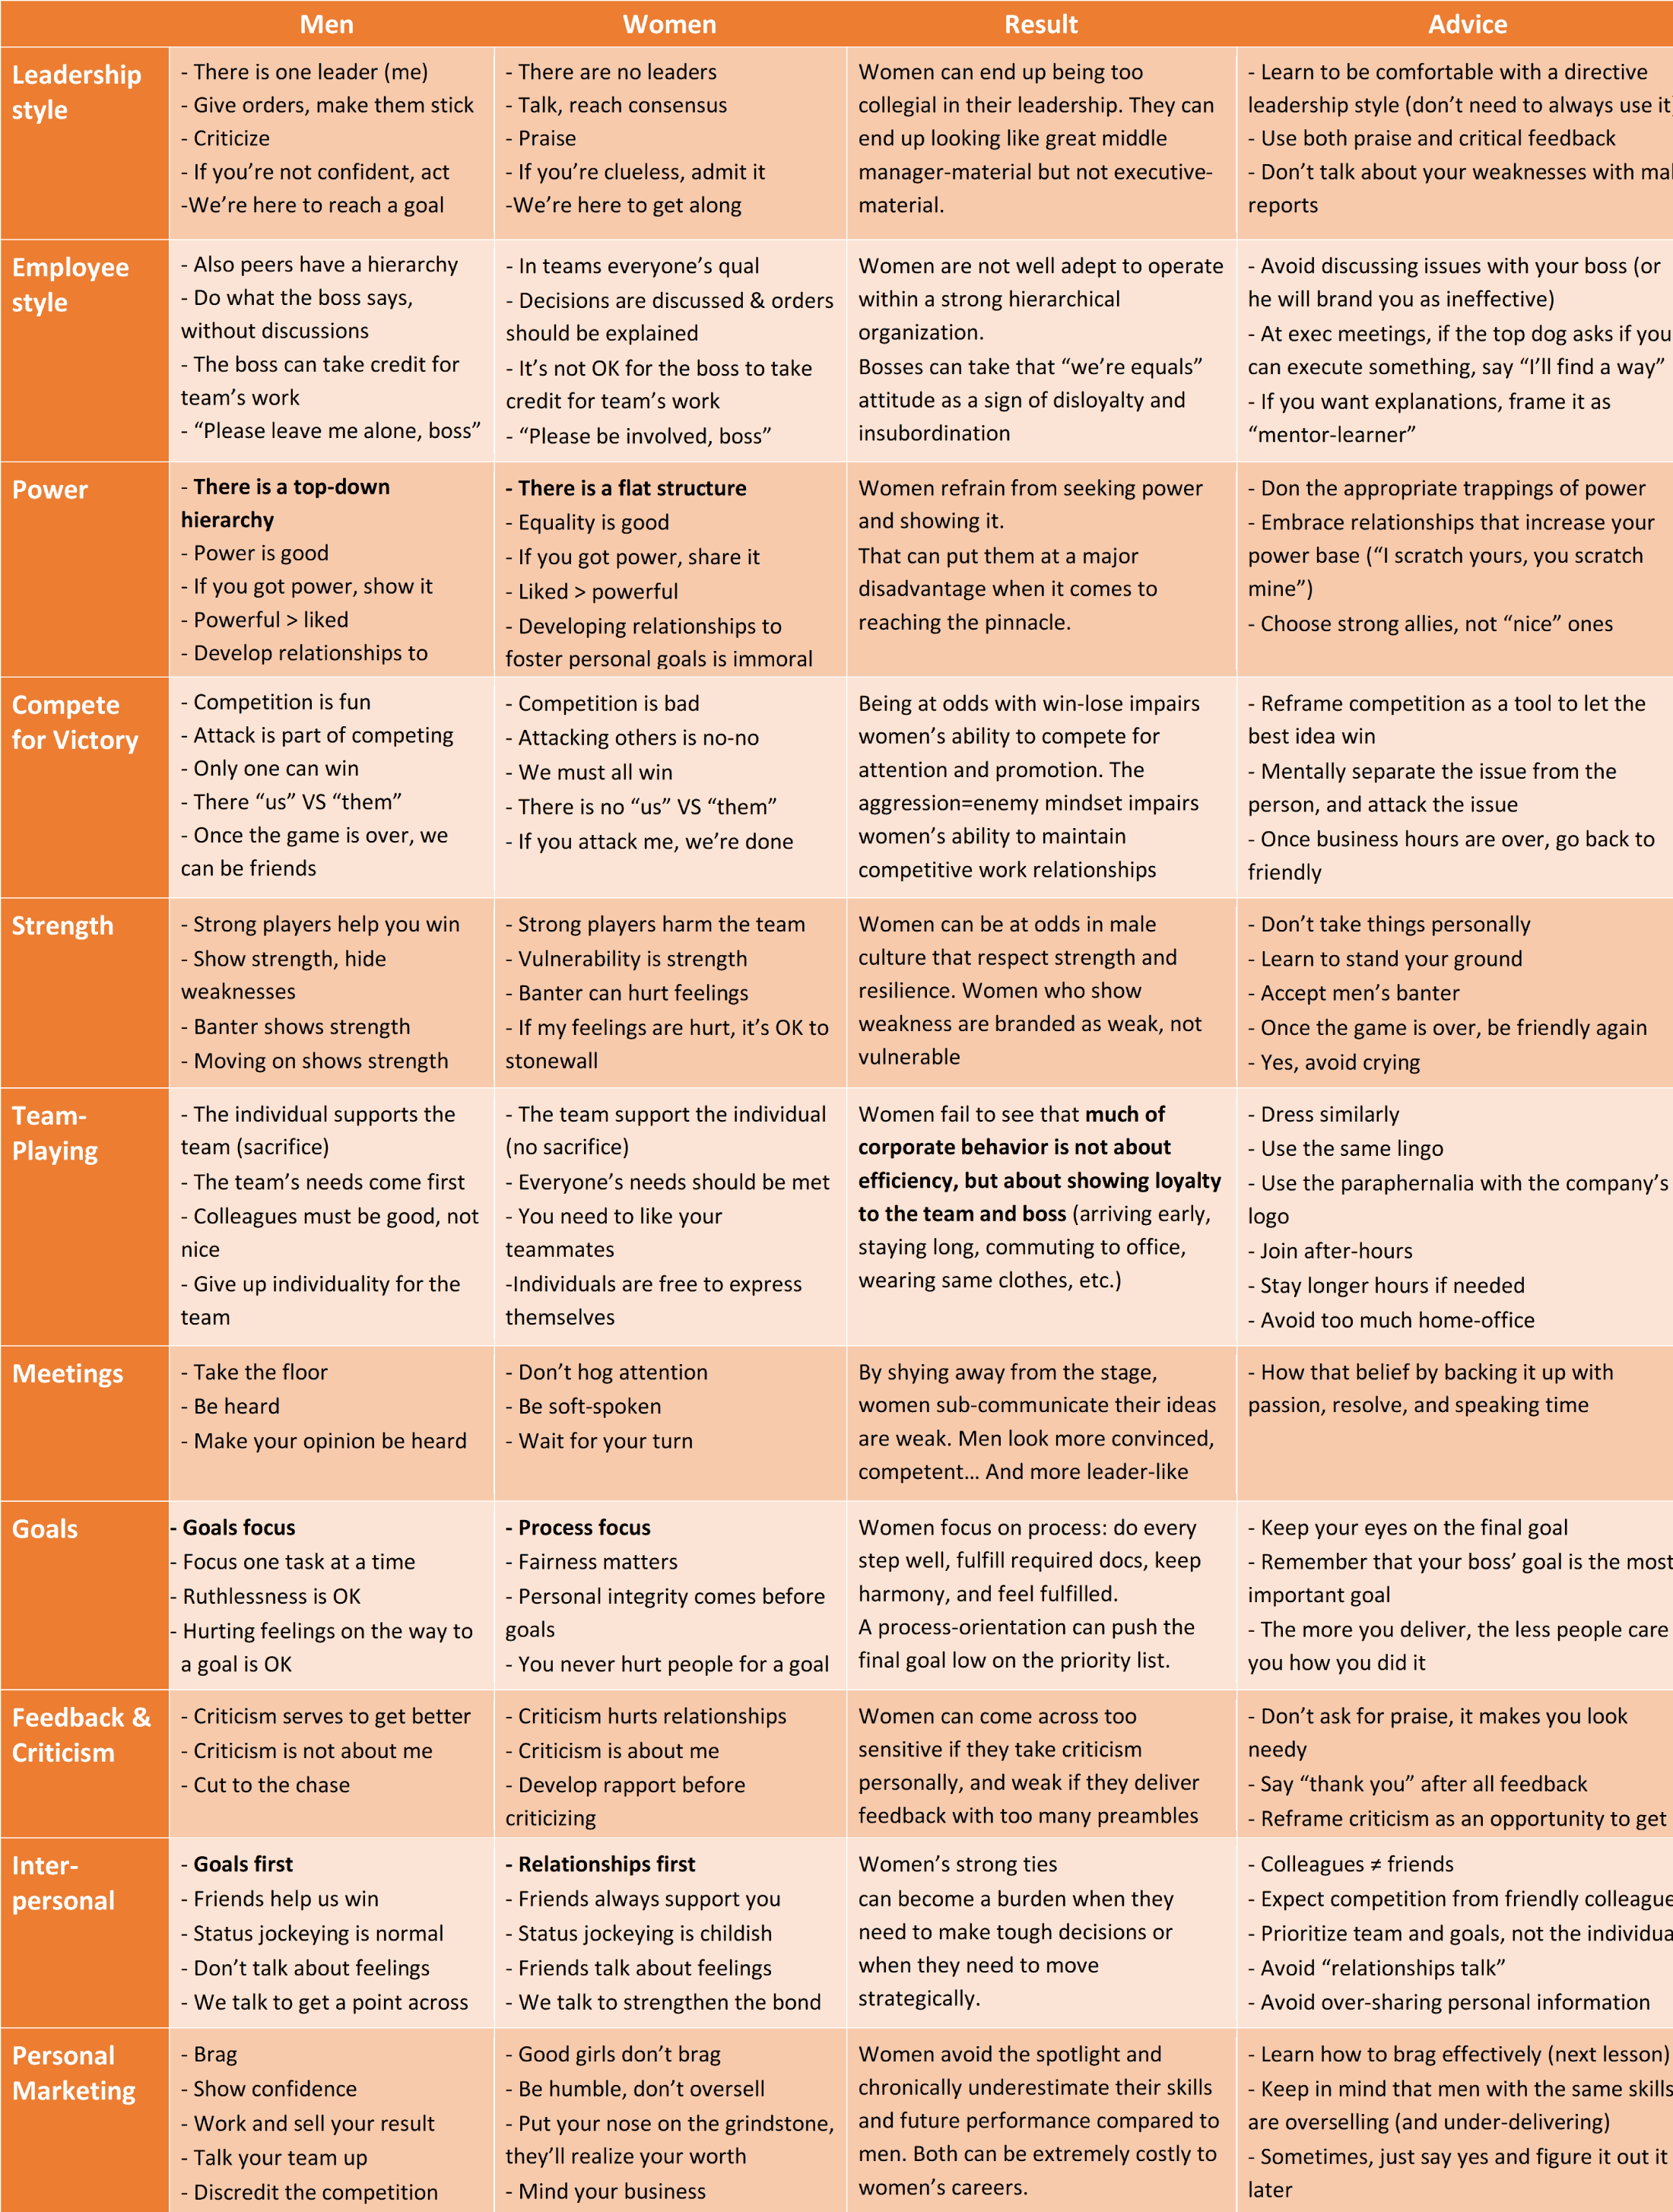 comparative table of female and male approaches to business